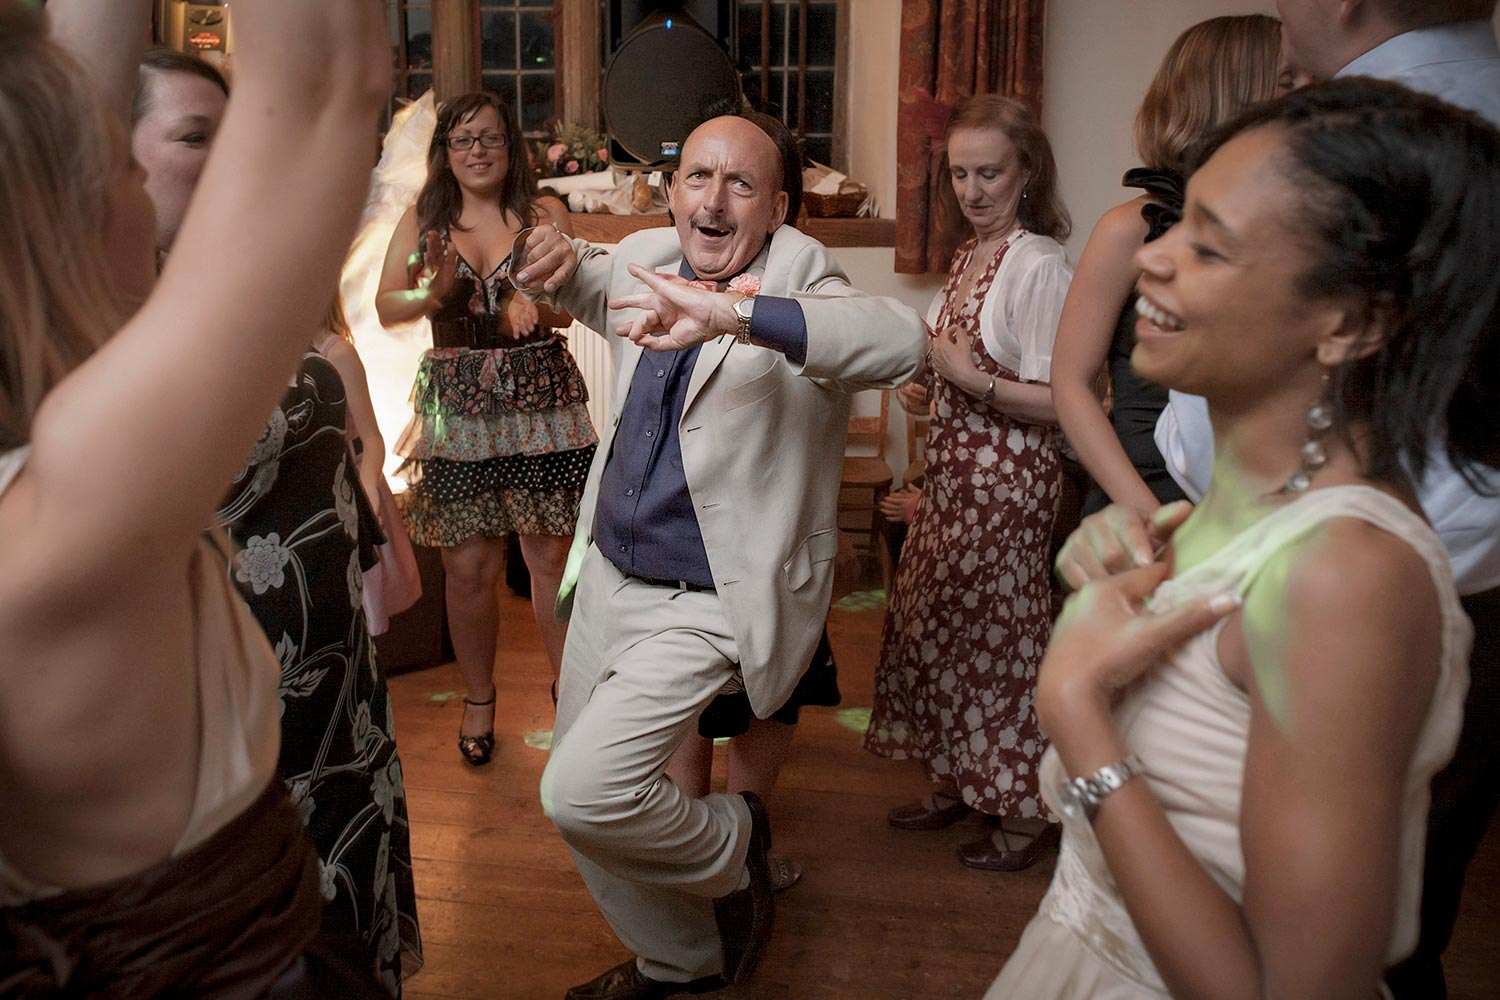 No one can dance like an uncle